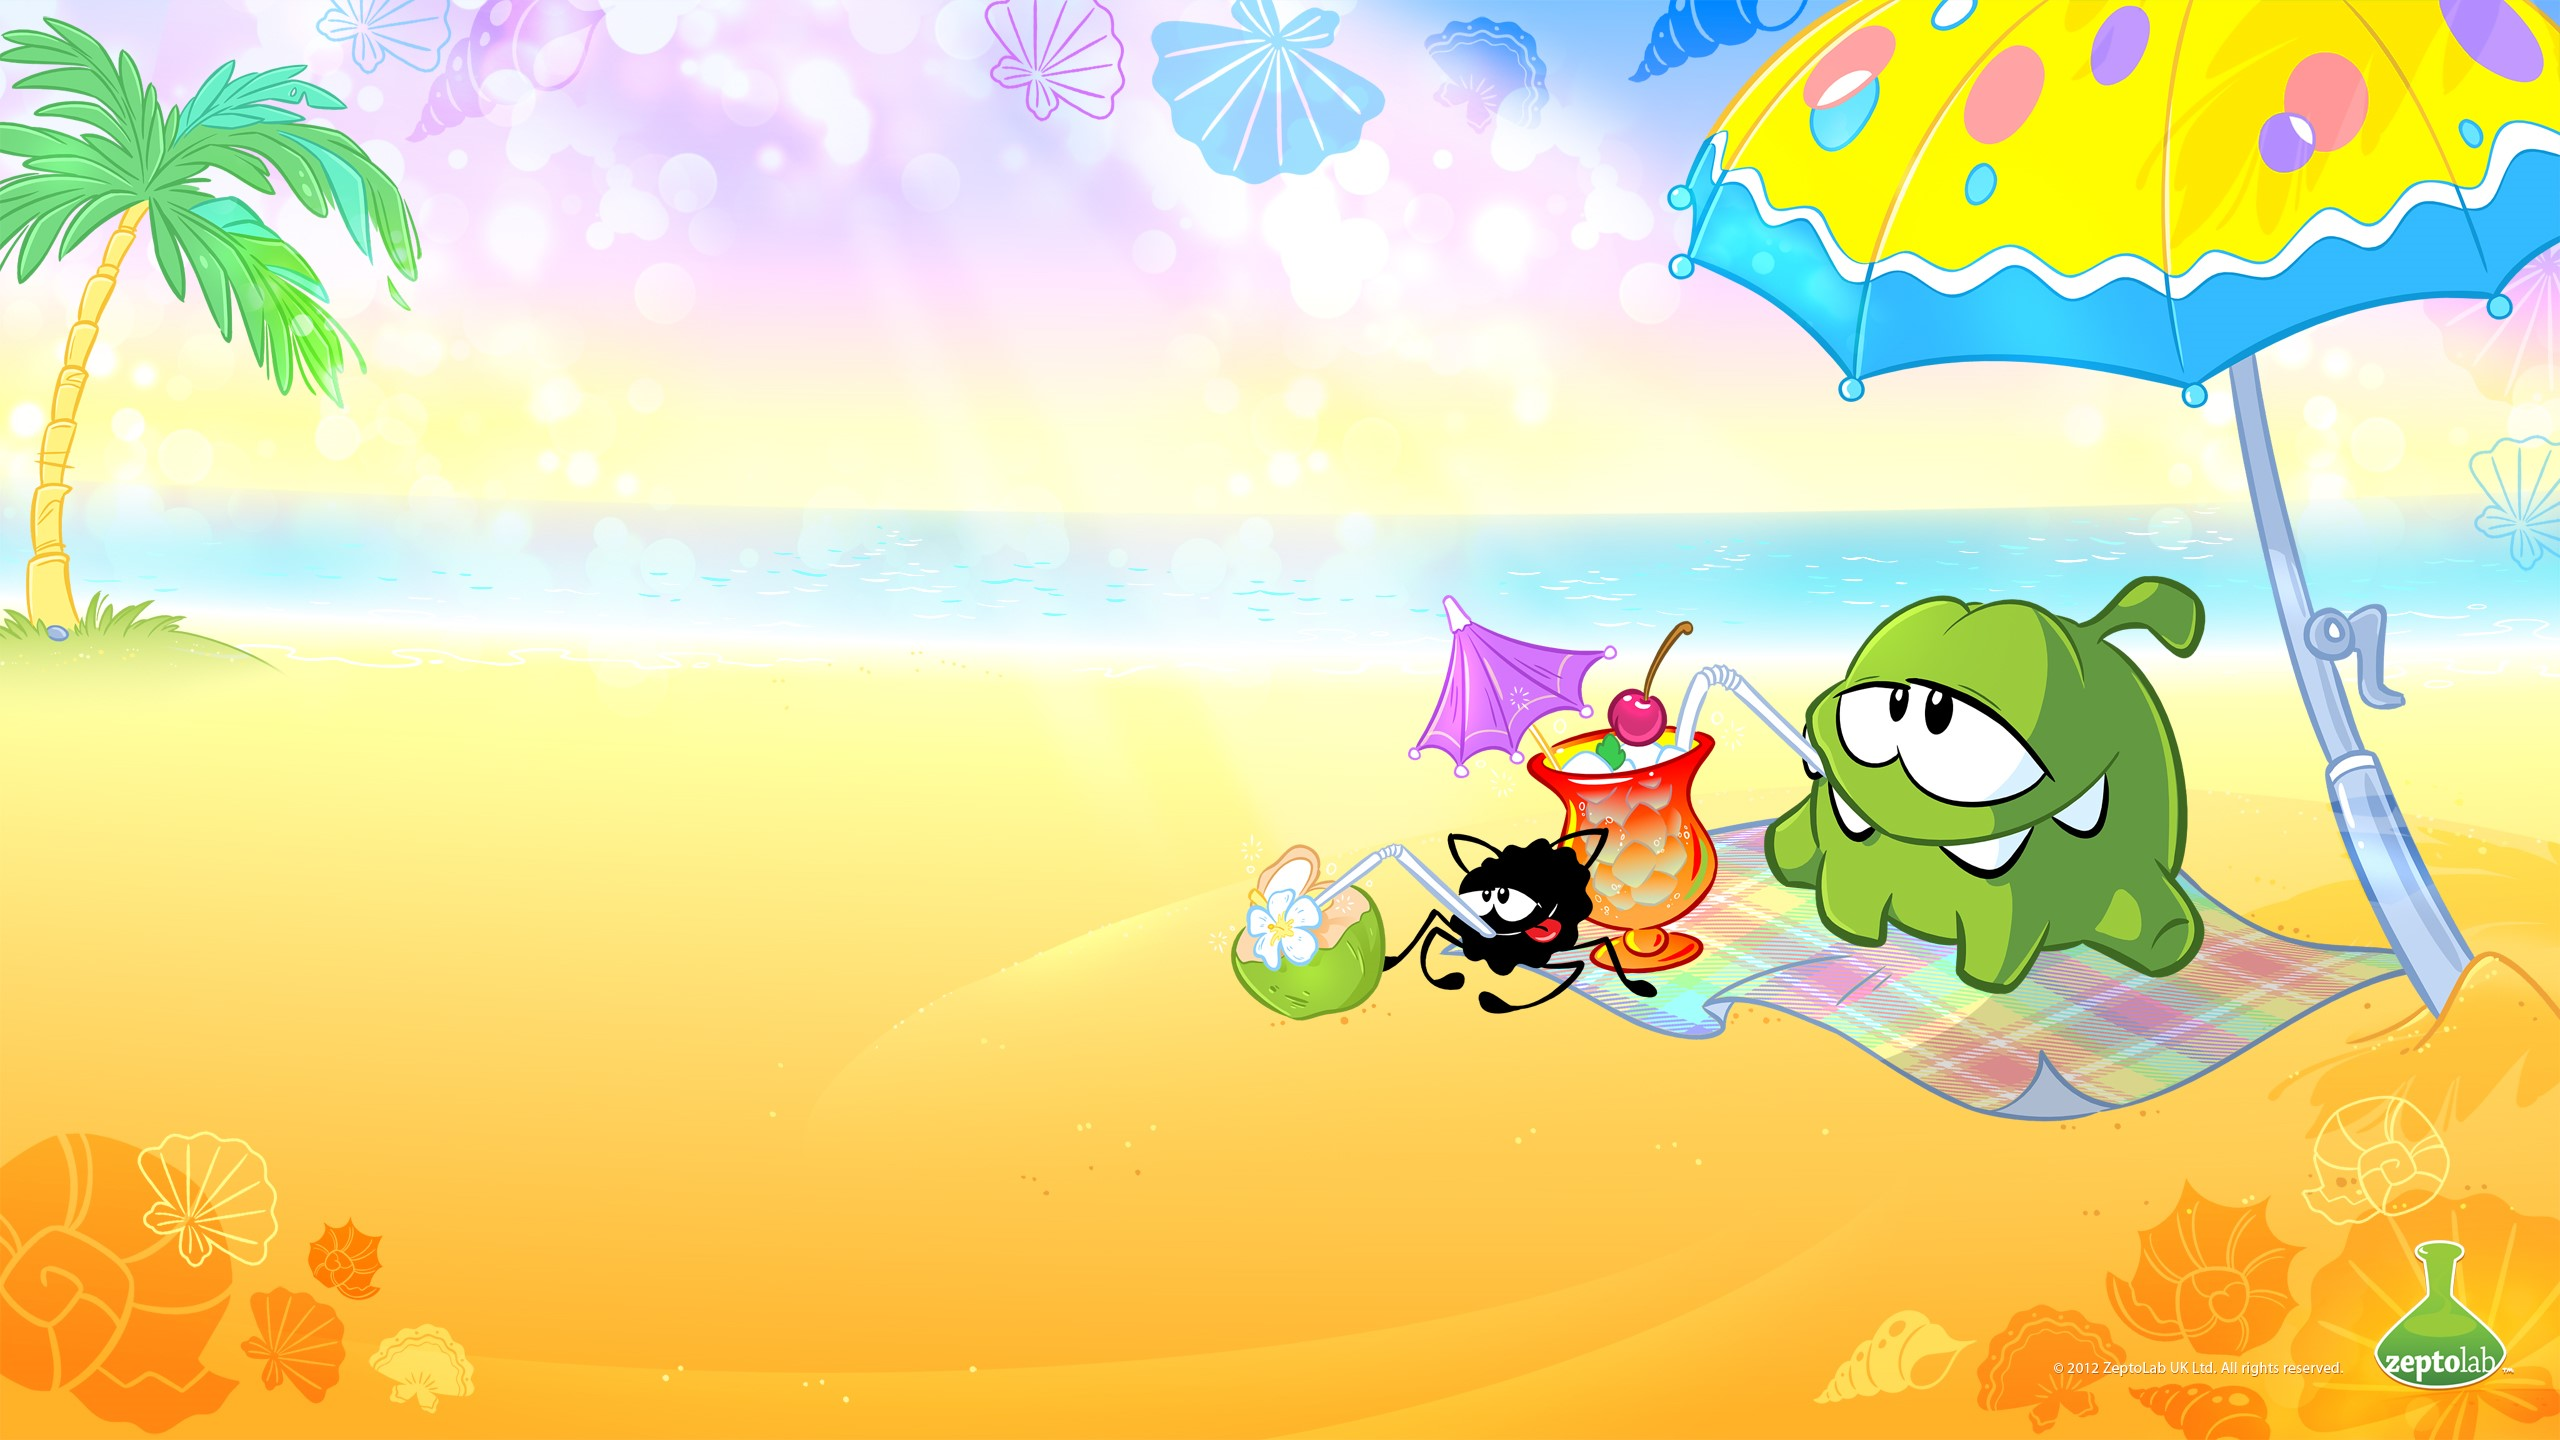 Fondo de pantalla de Cut the rope en la playa Imágenes